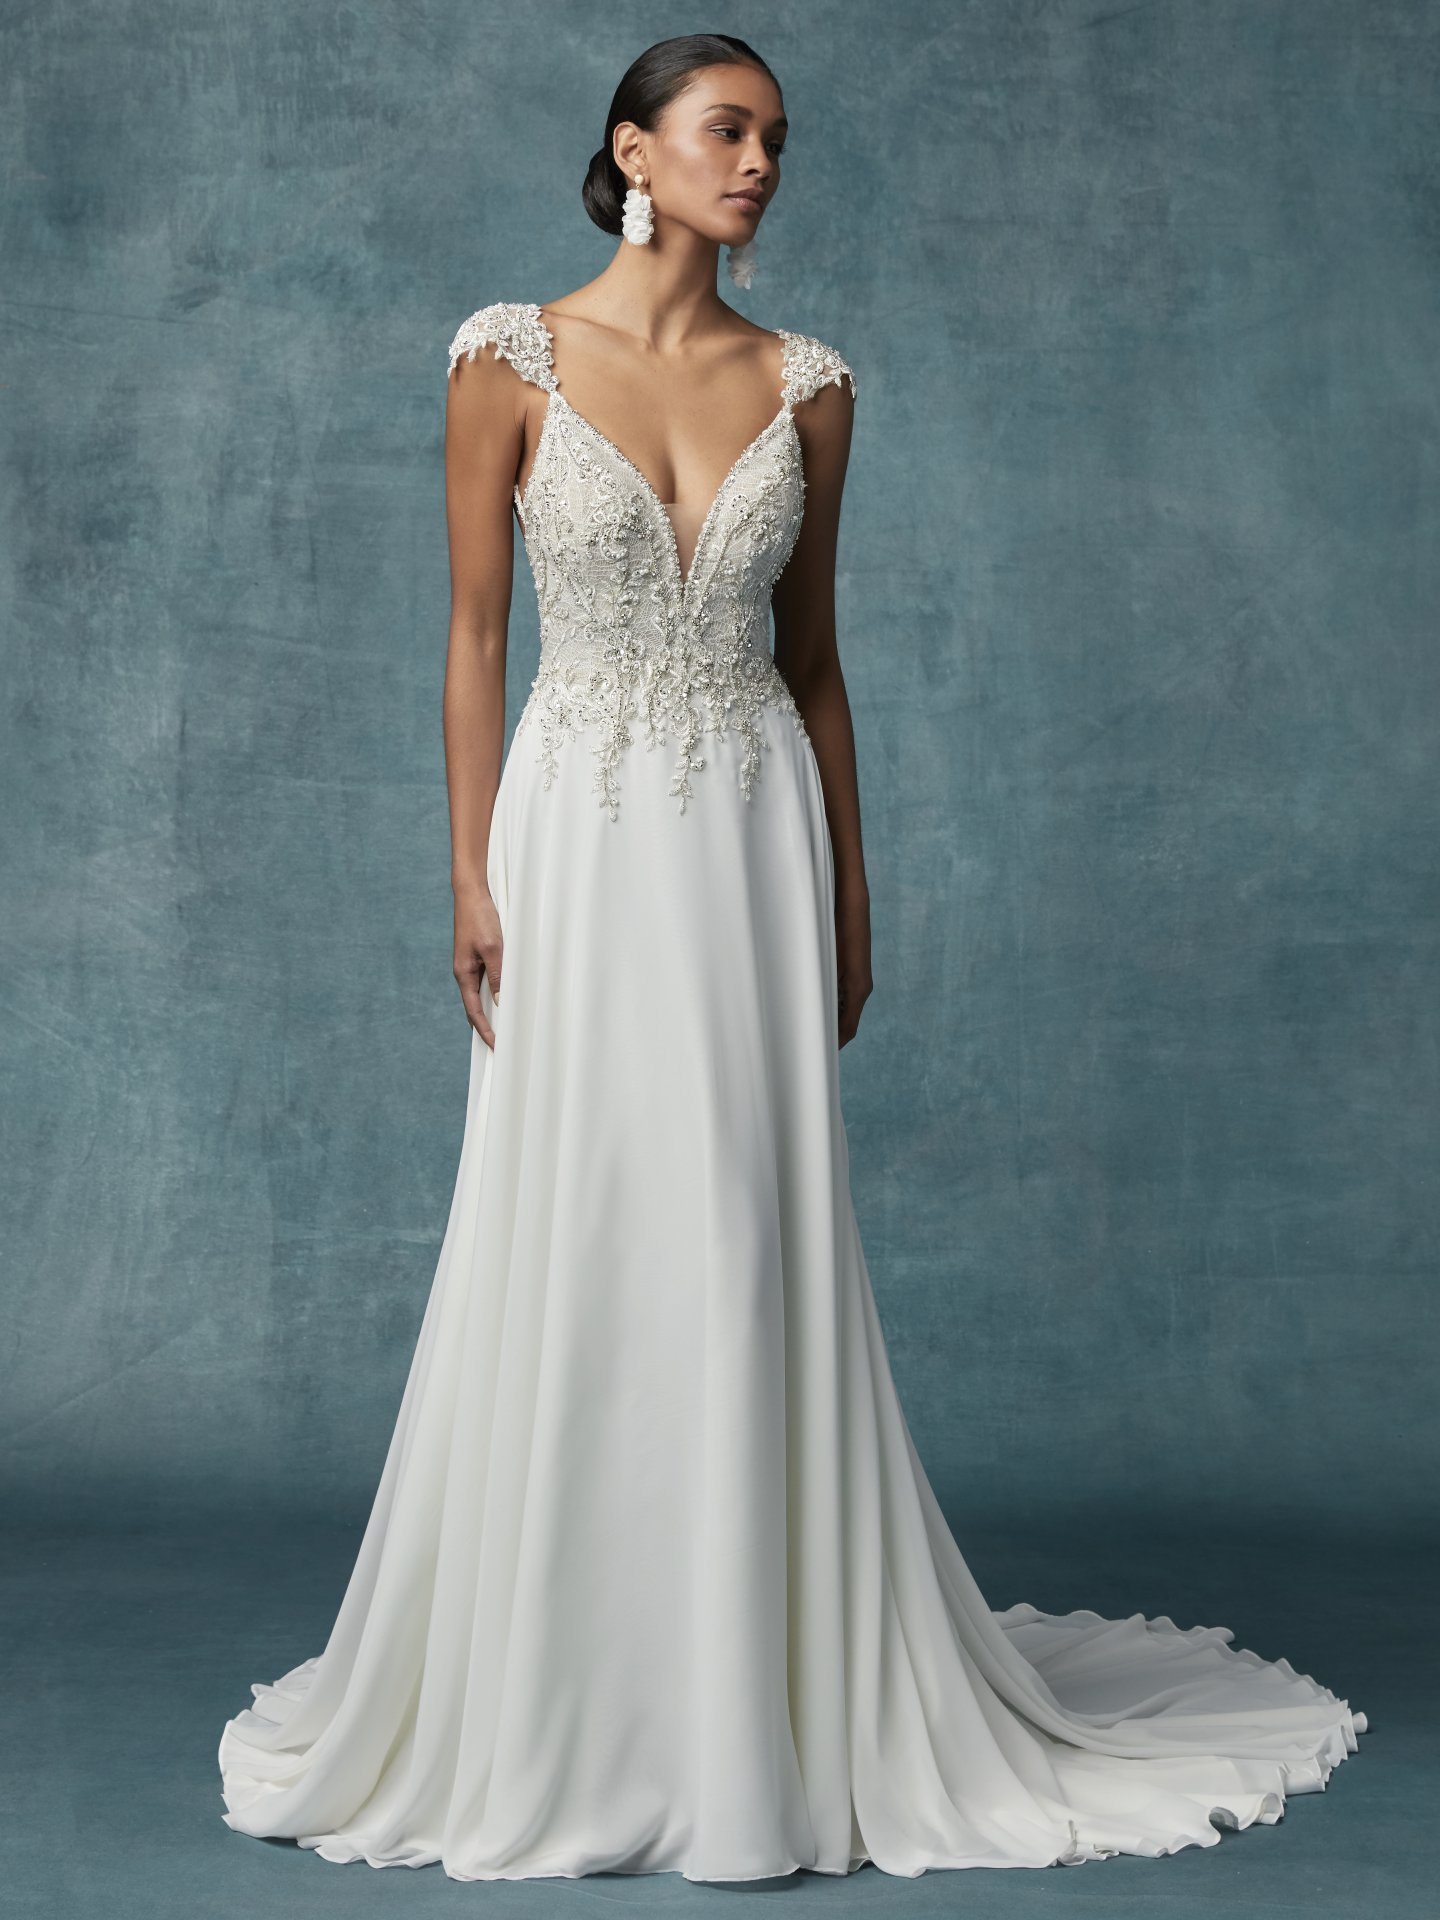 Beaded cap-sleeves and Grecian-inspired wedding dress features a bodice accented in beaded lace motifs and Swarovski crystals atop a Georgette chiffon A-line skirt. Fabulous Wedding Dresses With a Variety of Beaded Sleeves